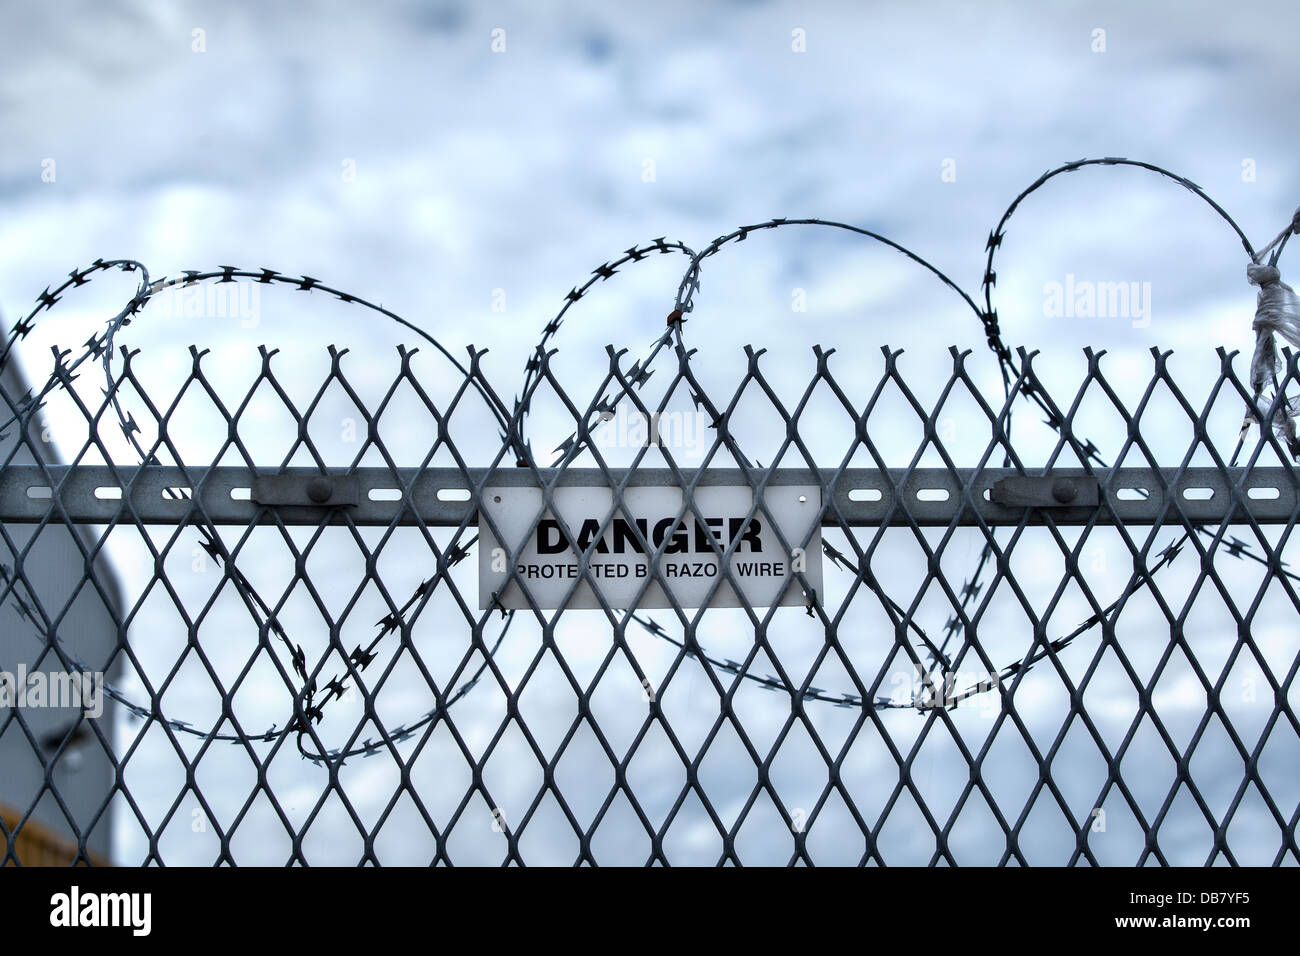 Security Fence Cut Out Stock Photos & Security Fence Cut Out Stock ...